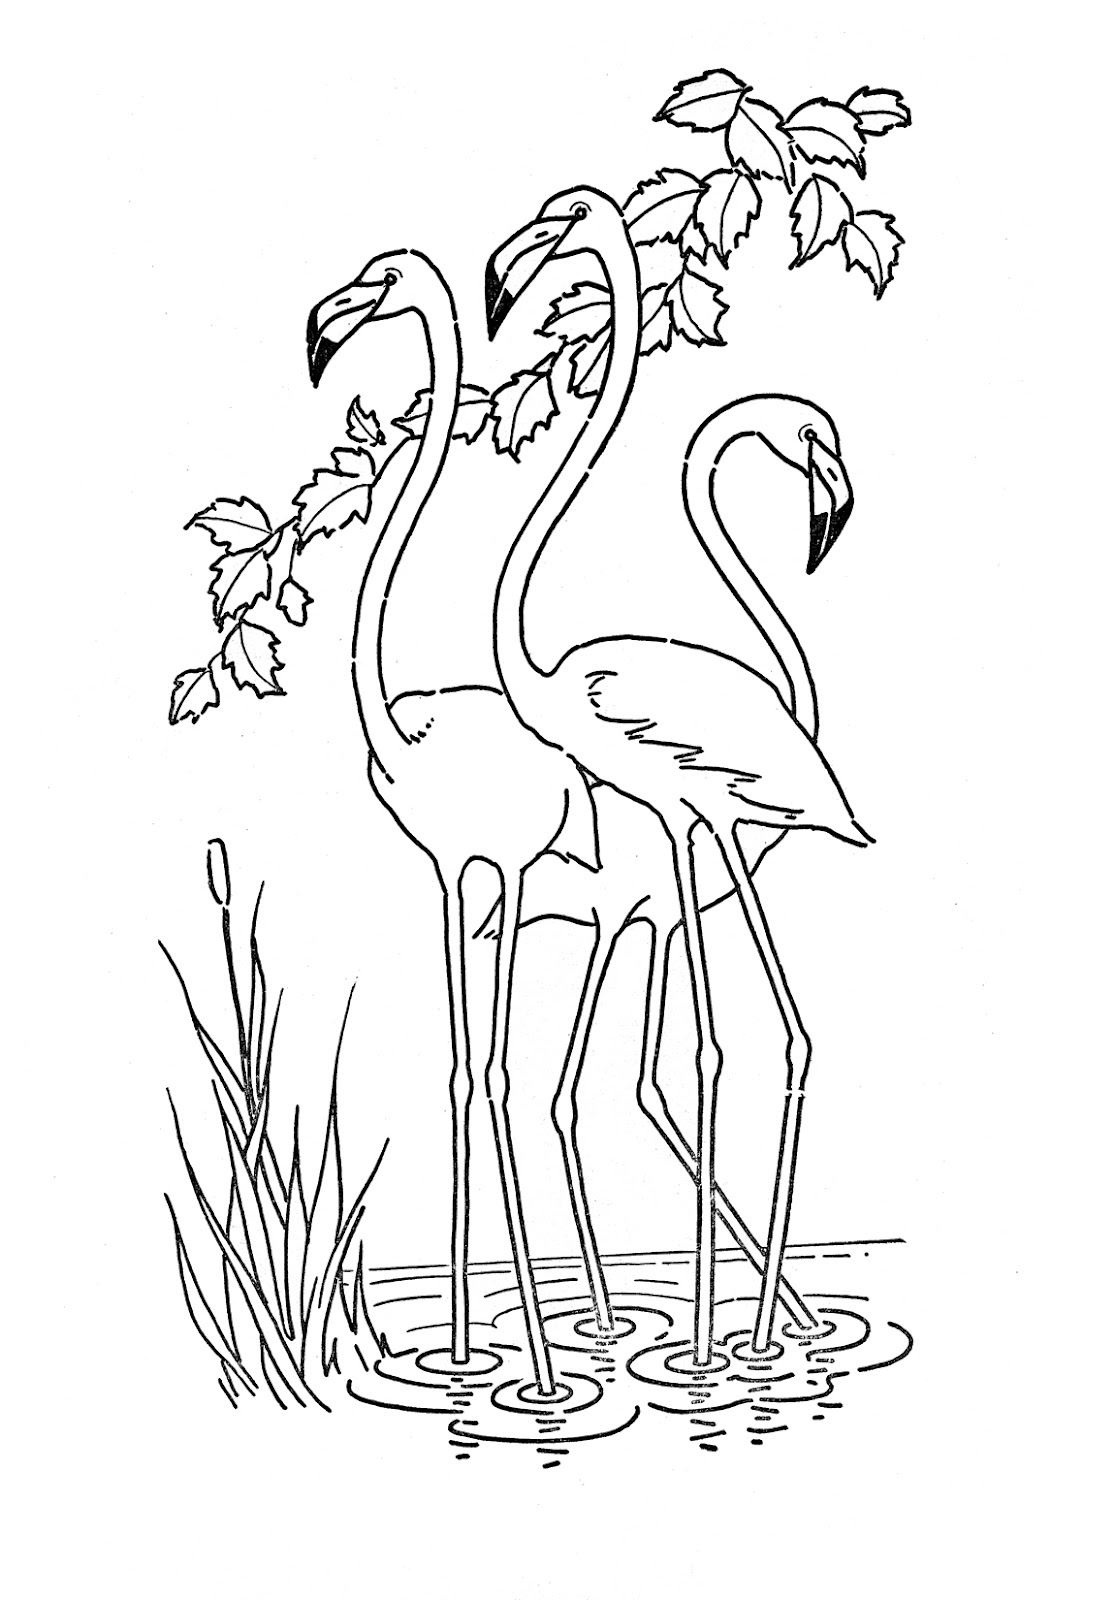 kids printable flamingo coloring page - Kids Printable Color Pages